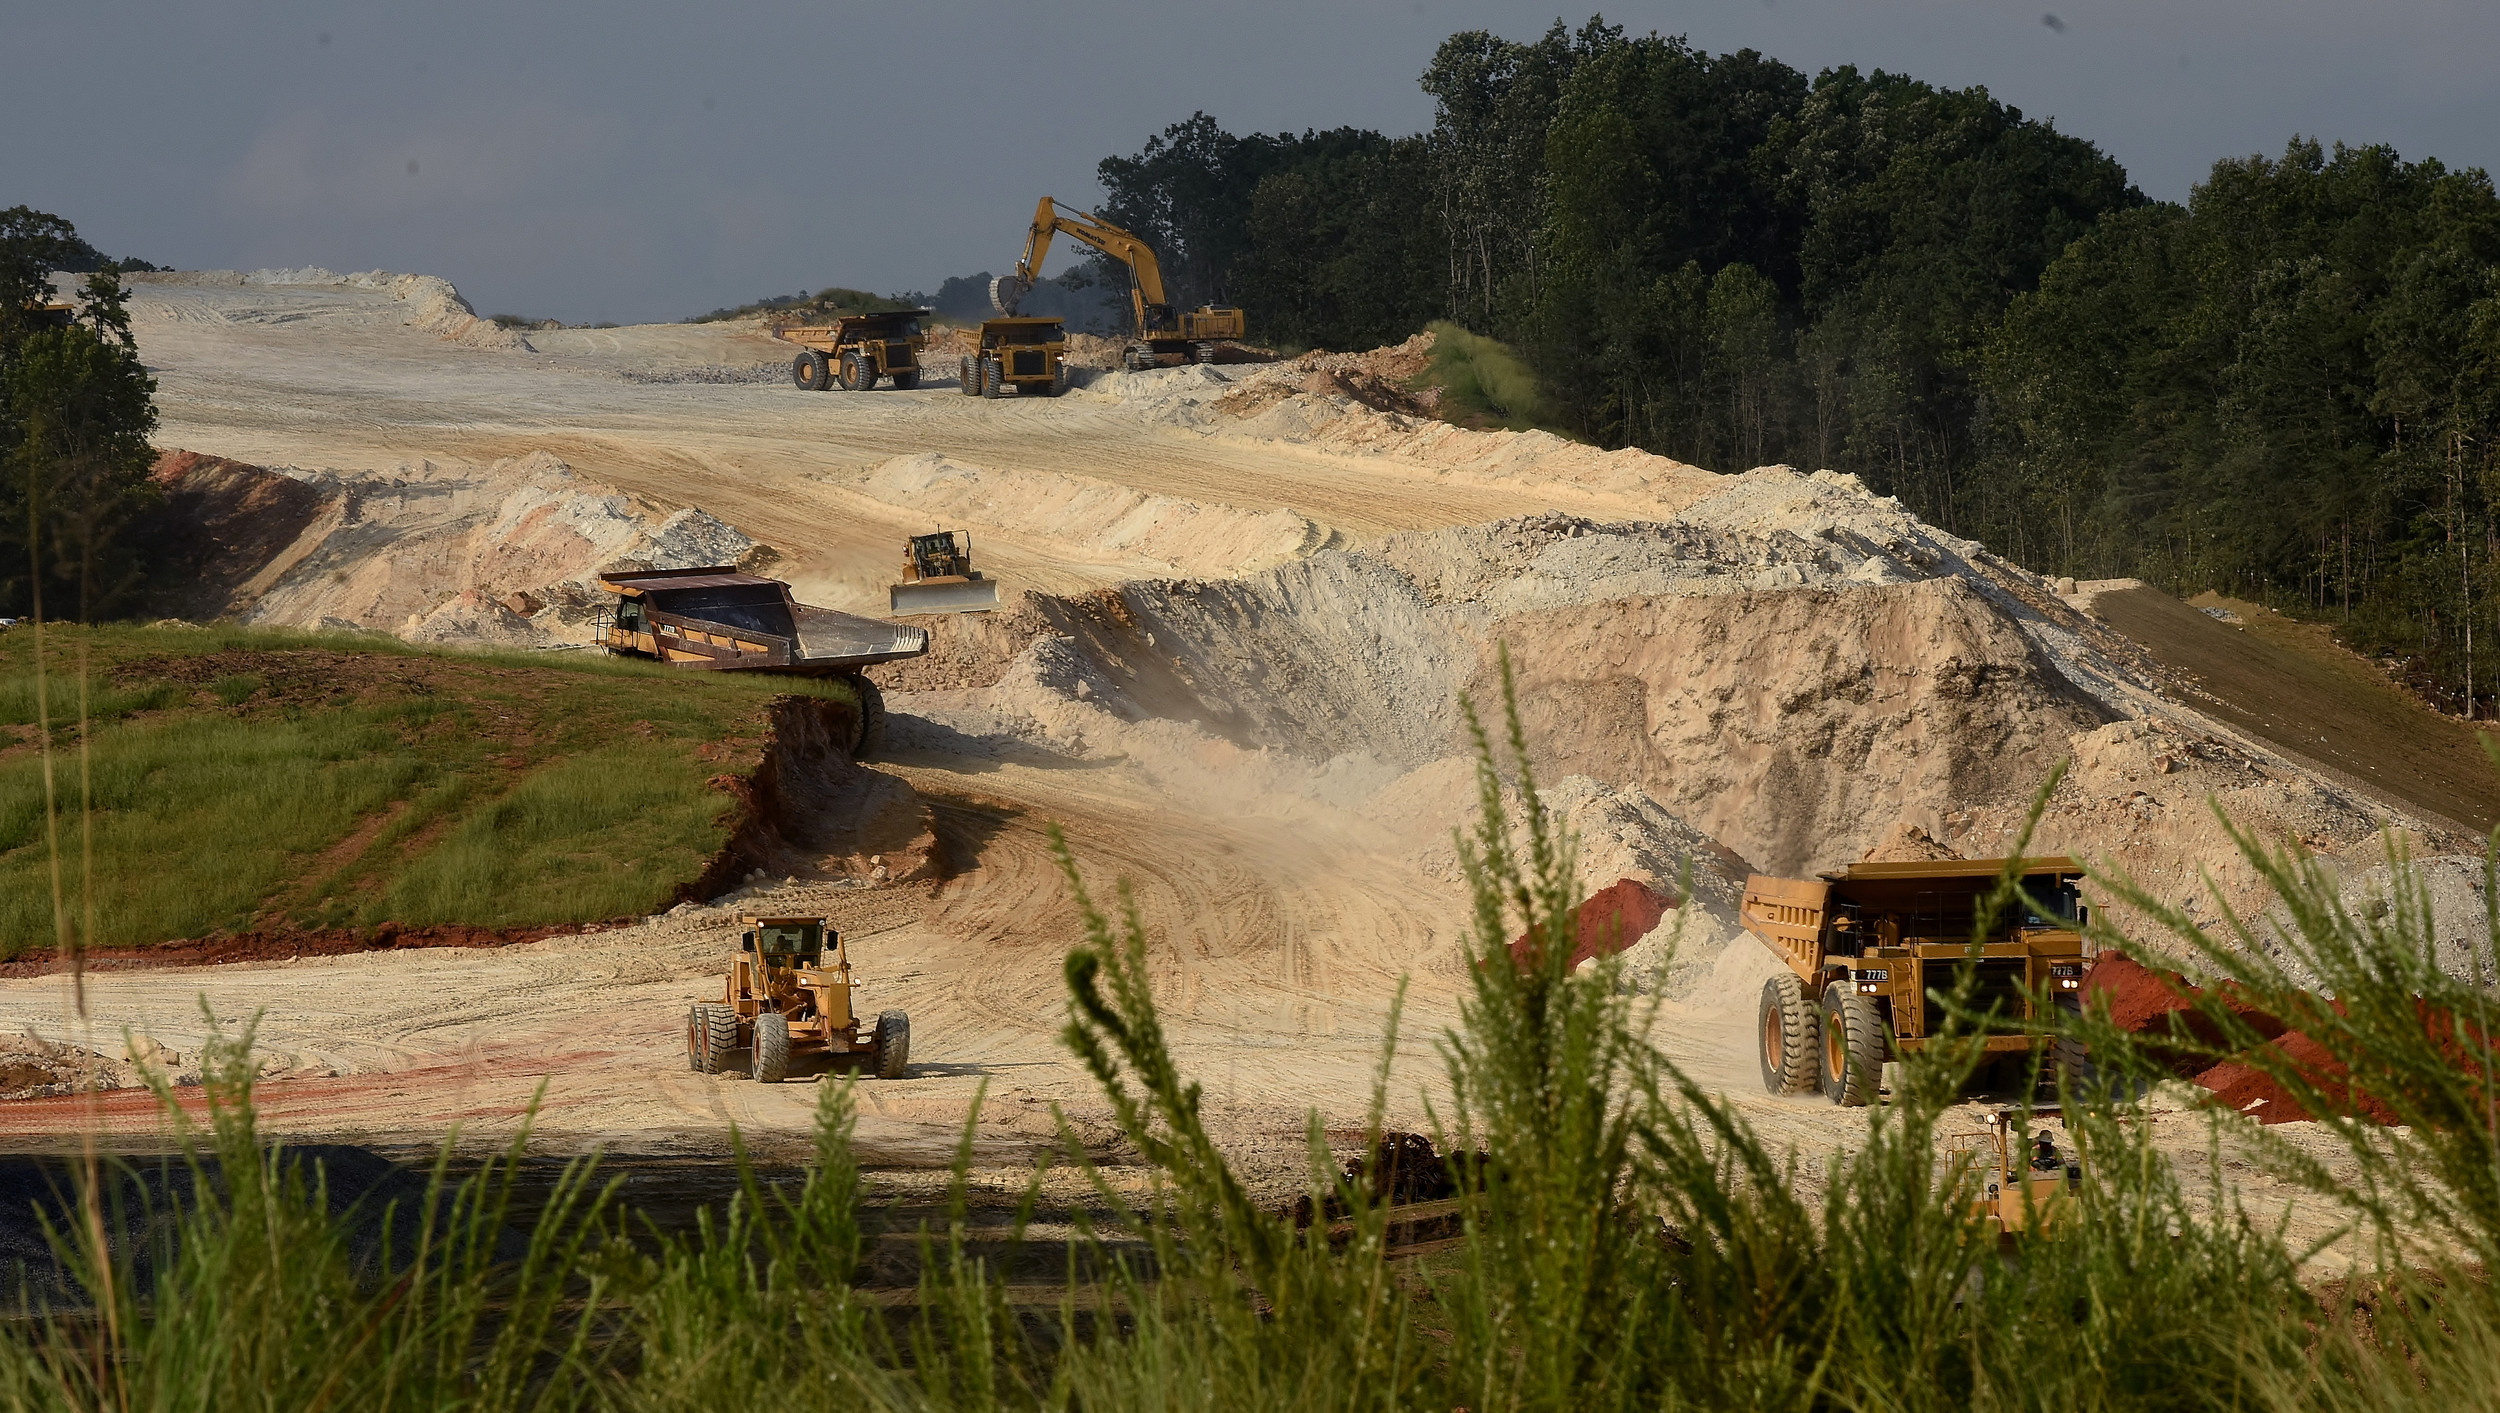 Looking north from Emerson, progress continues on the expansion of LakePoint as heavy equipment clears land on the west side of I-75 between the Emerson and Red Top Mountain Road exits.